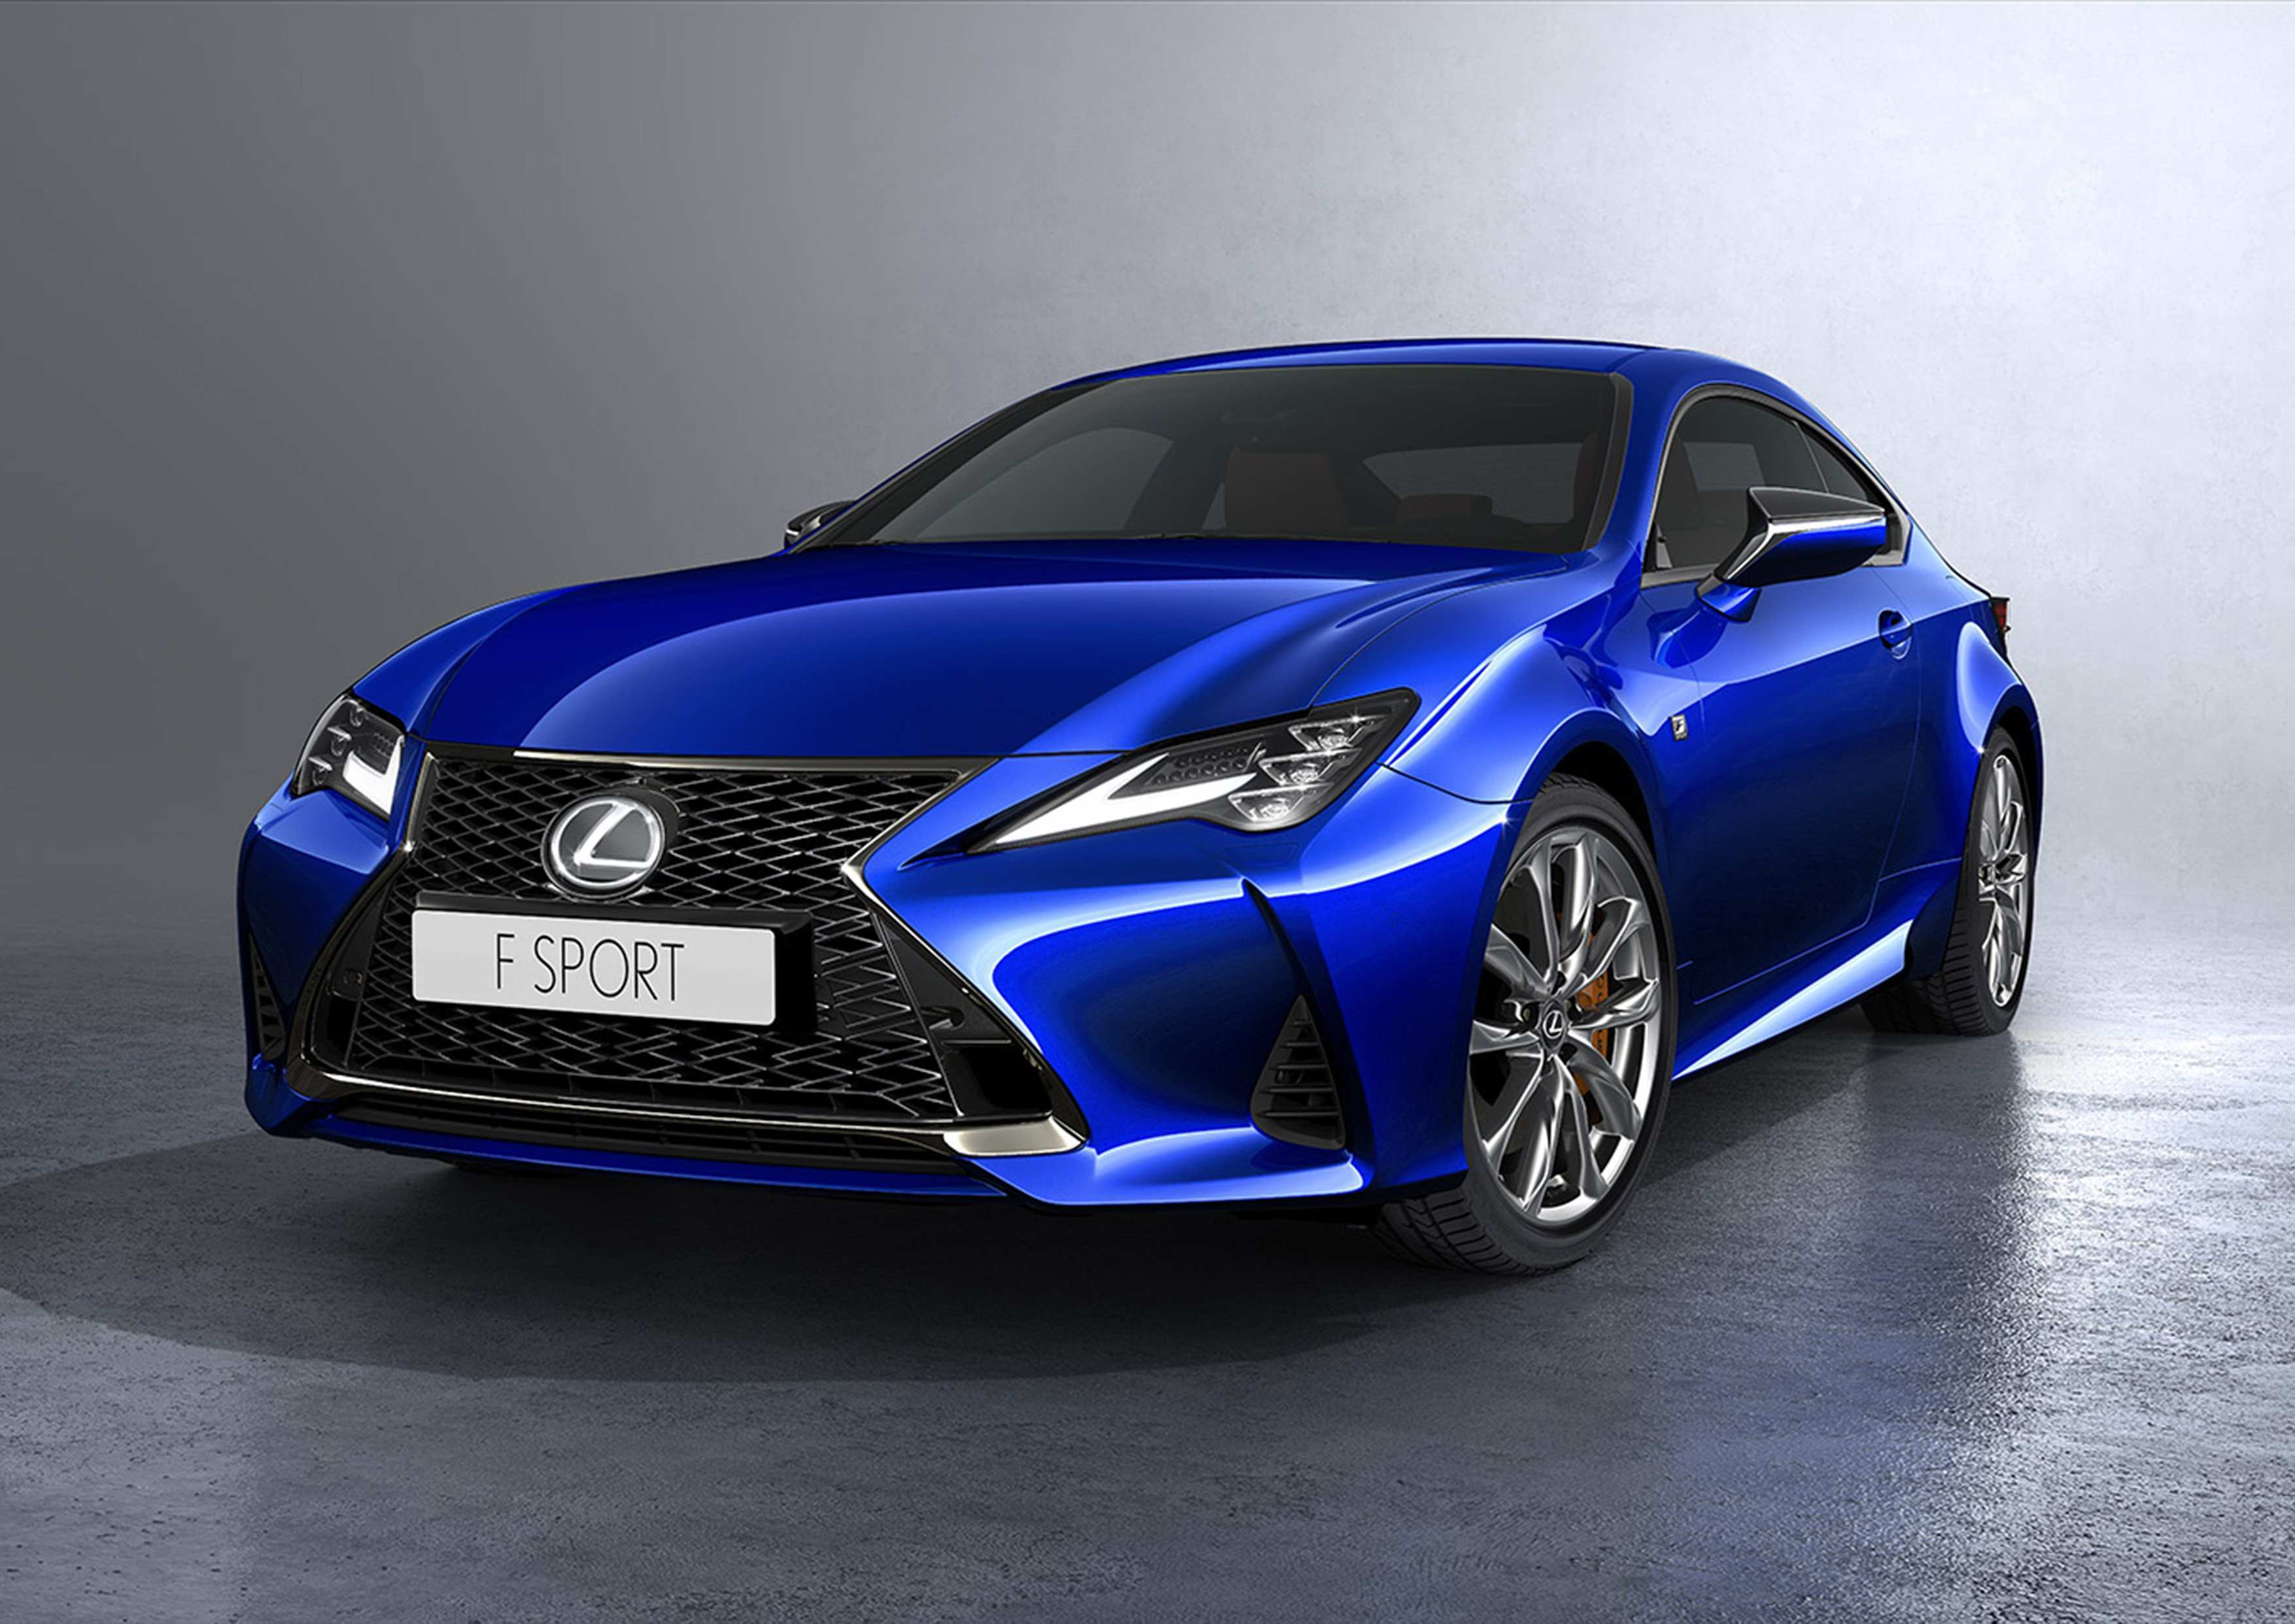 60 Concept of When Lexus 2020 Come Out Reviews with When Lexus 2020 Come Out